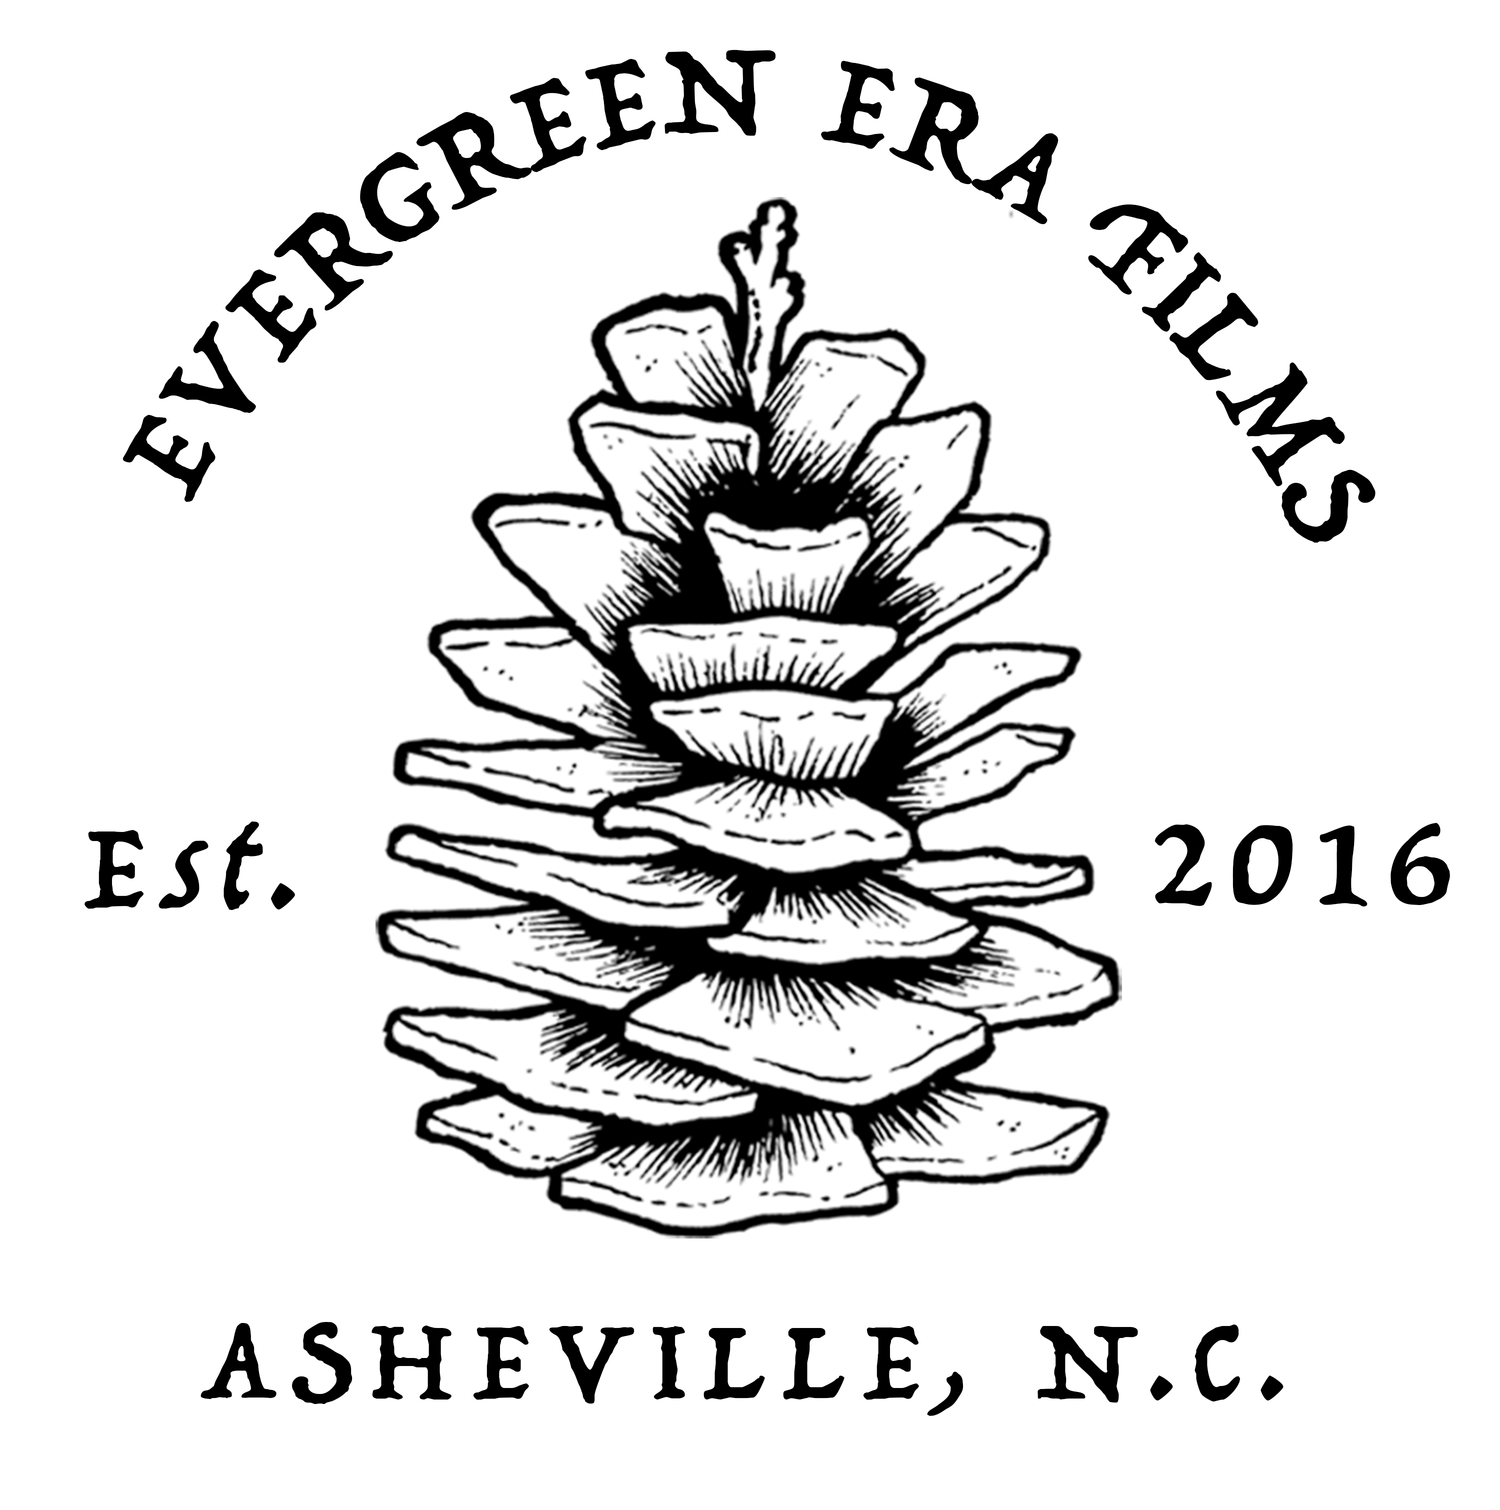 Asheville Wedding Videographer | Evergreen Era Films